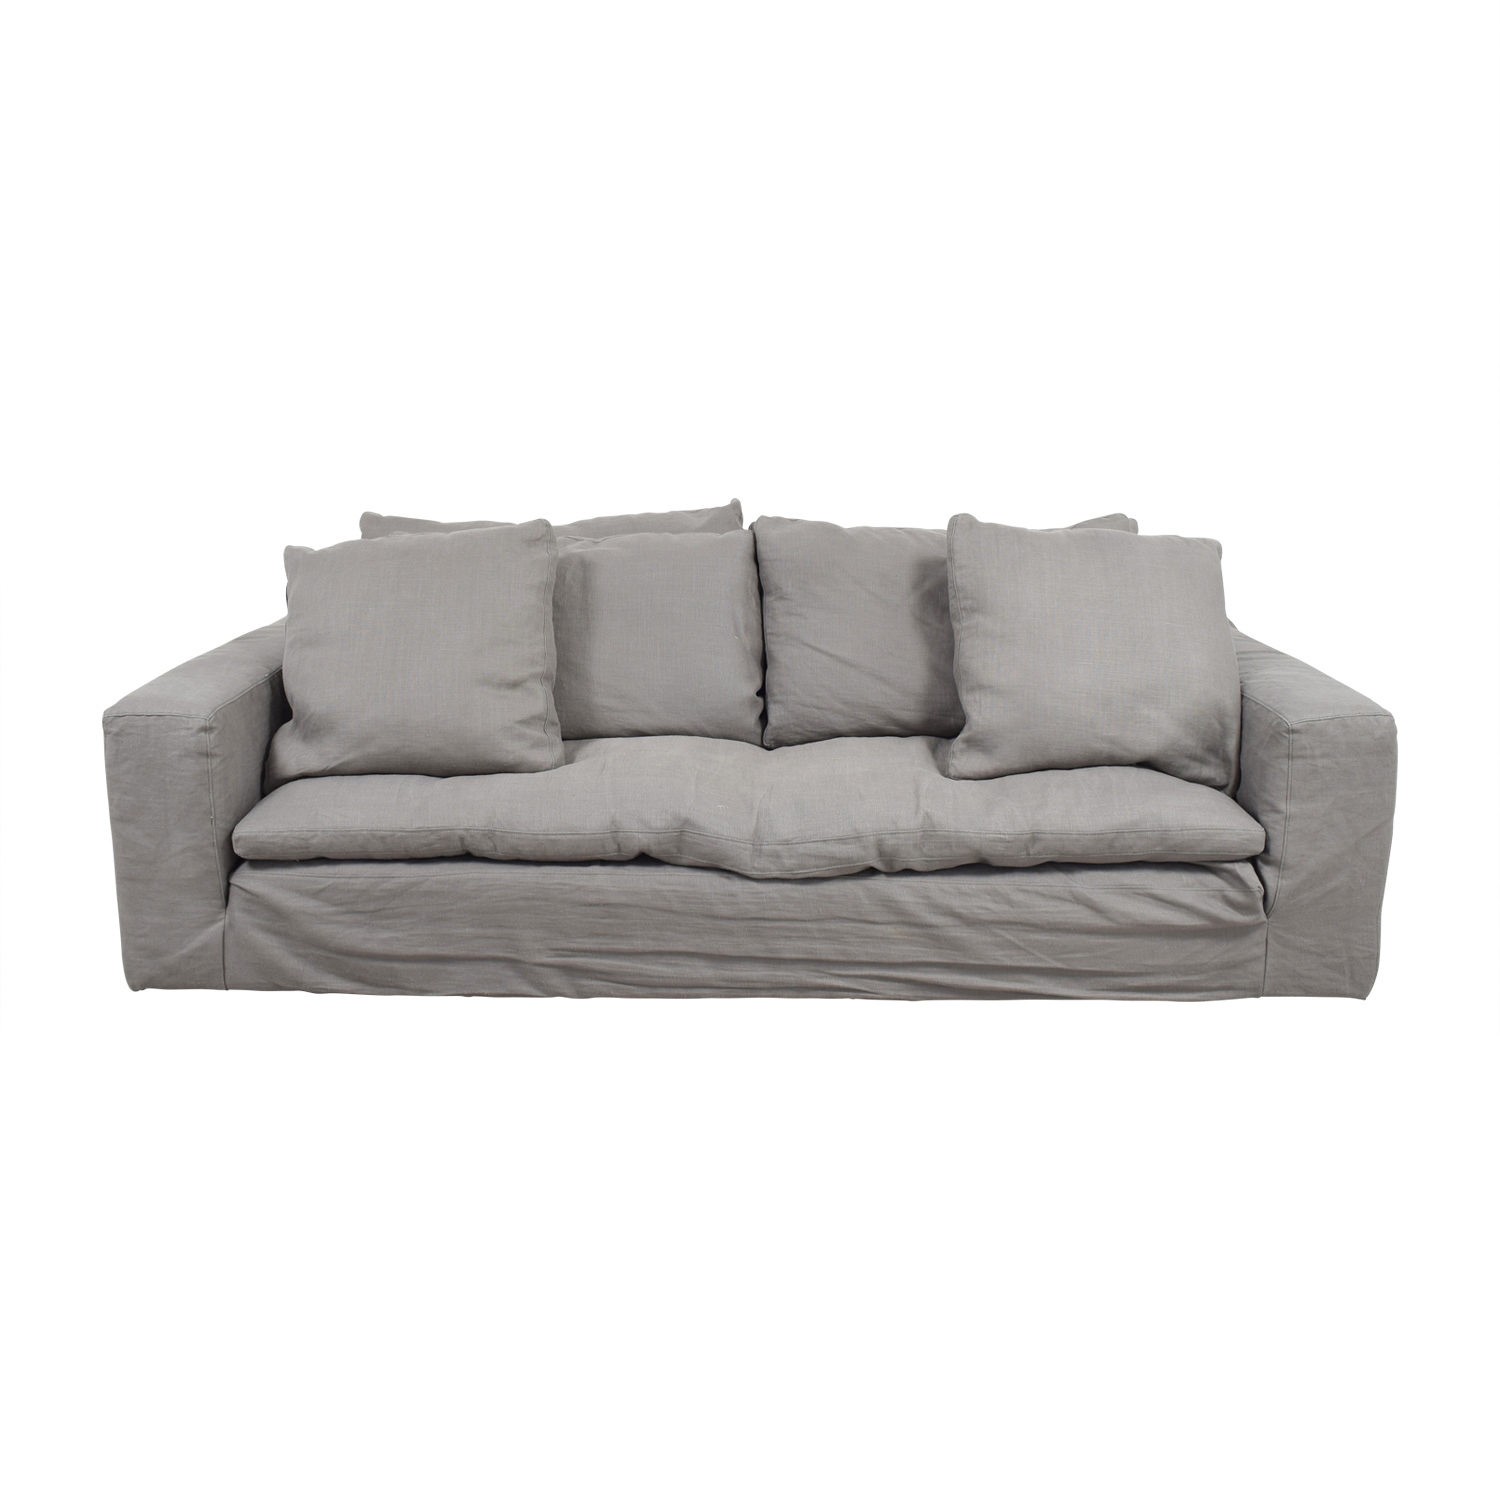 Restoration Hardware Grey Cloud Sofa Clic Sofas